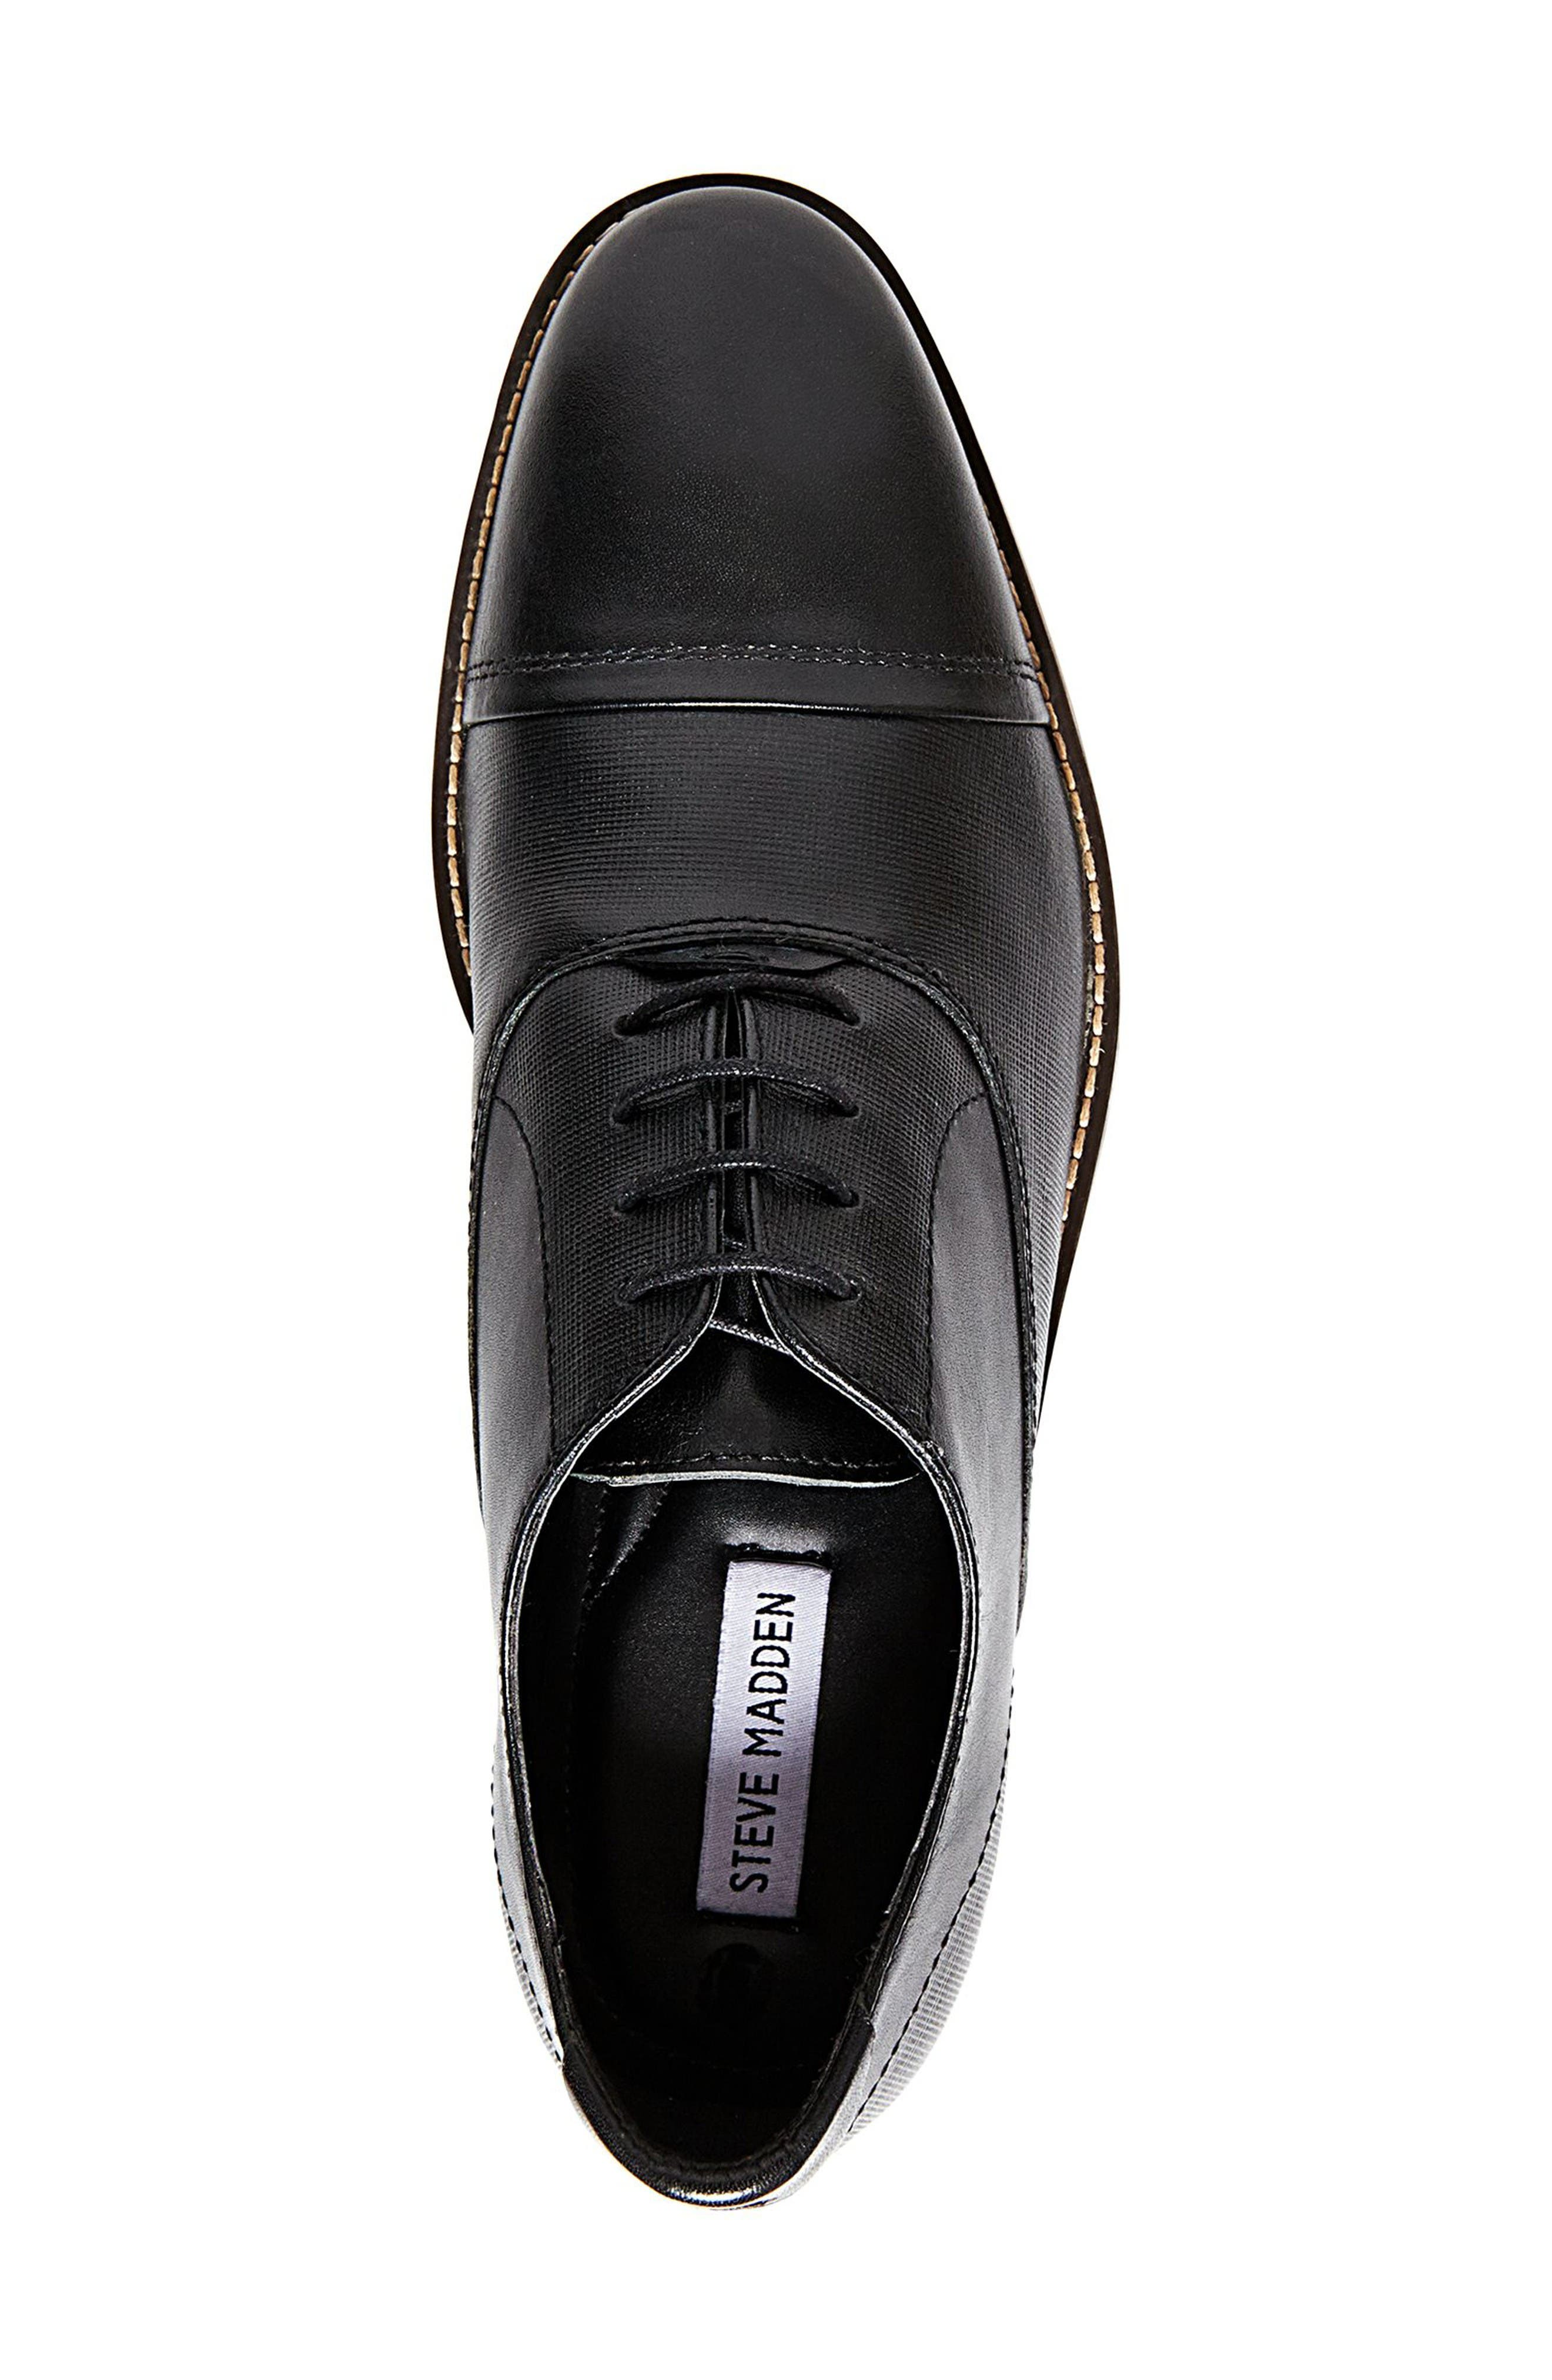 Finnich Textured Cap Toe Oxford,                             Alternate thumbnail 3, color,                             Black